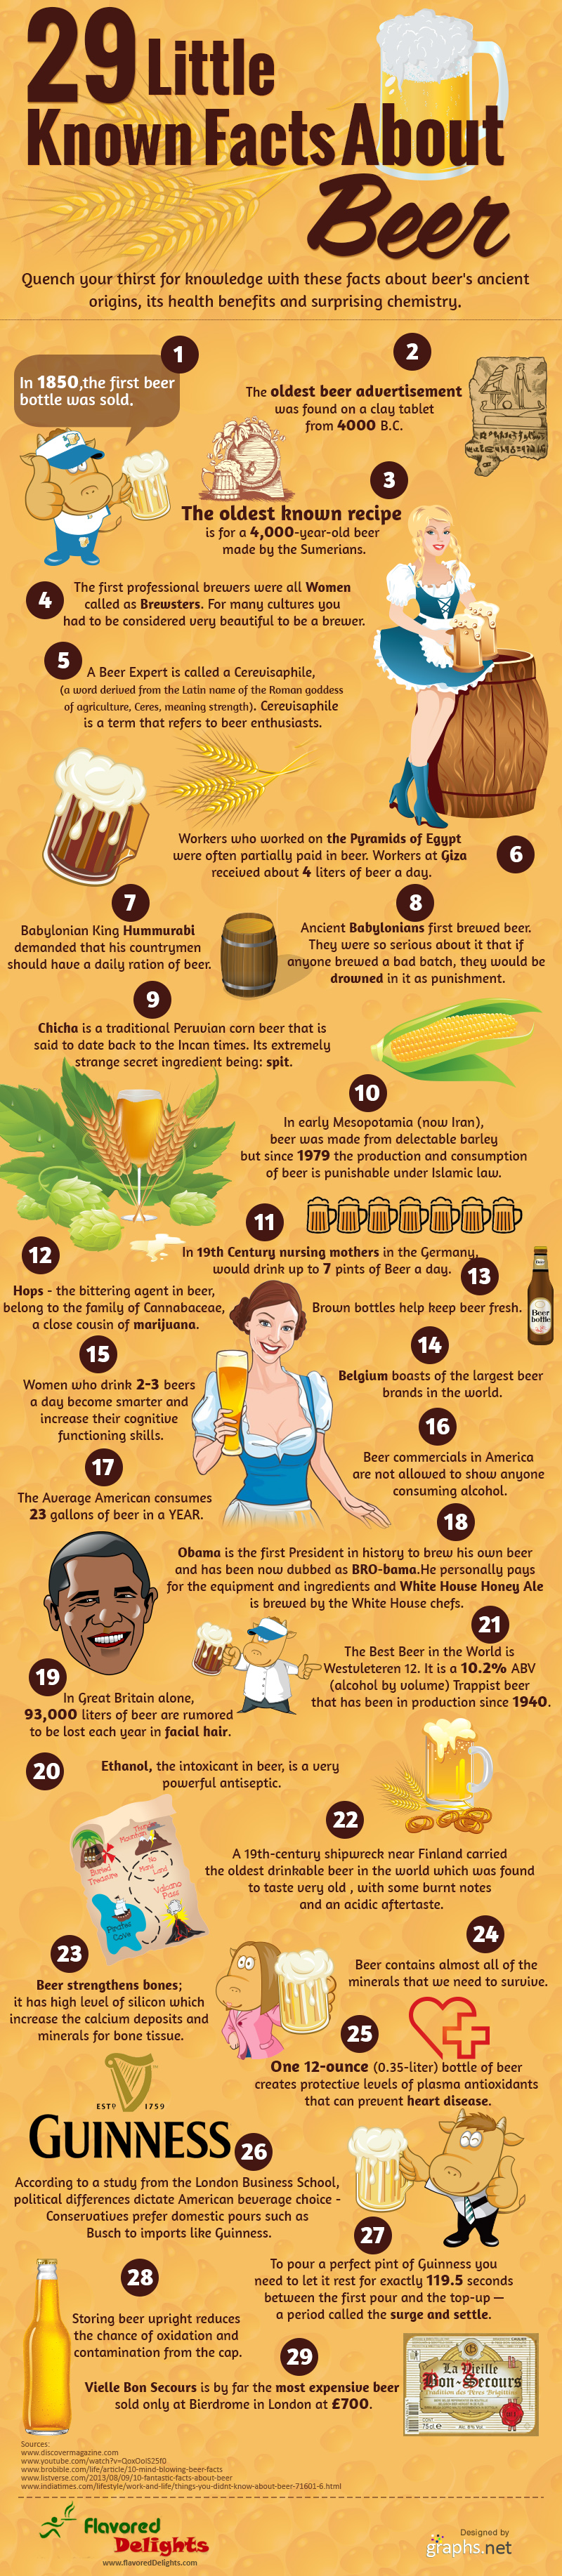 29 Unusual Fun Facts About Beer - Infographic